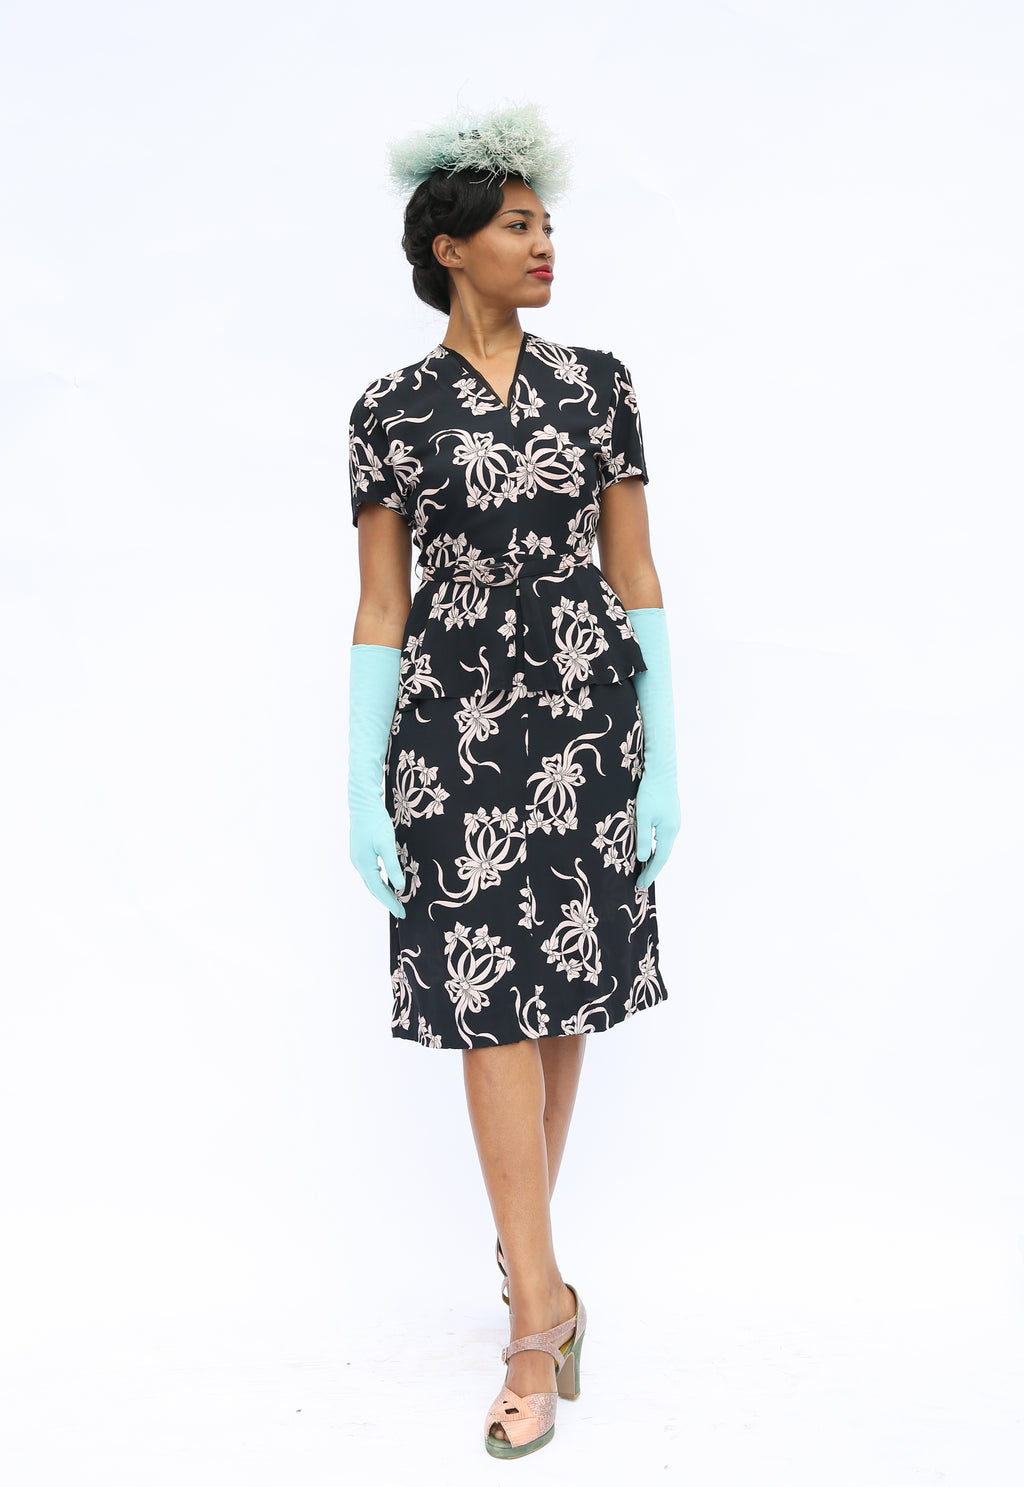 Darling 1940s Printed Rayon Dress in Black with Pale Bow Motif